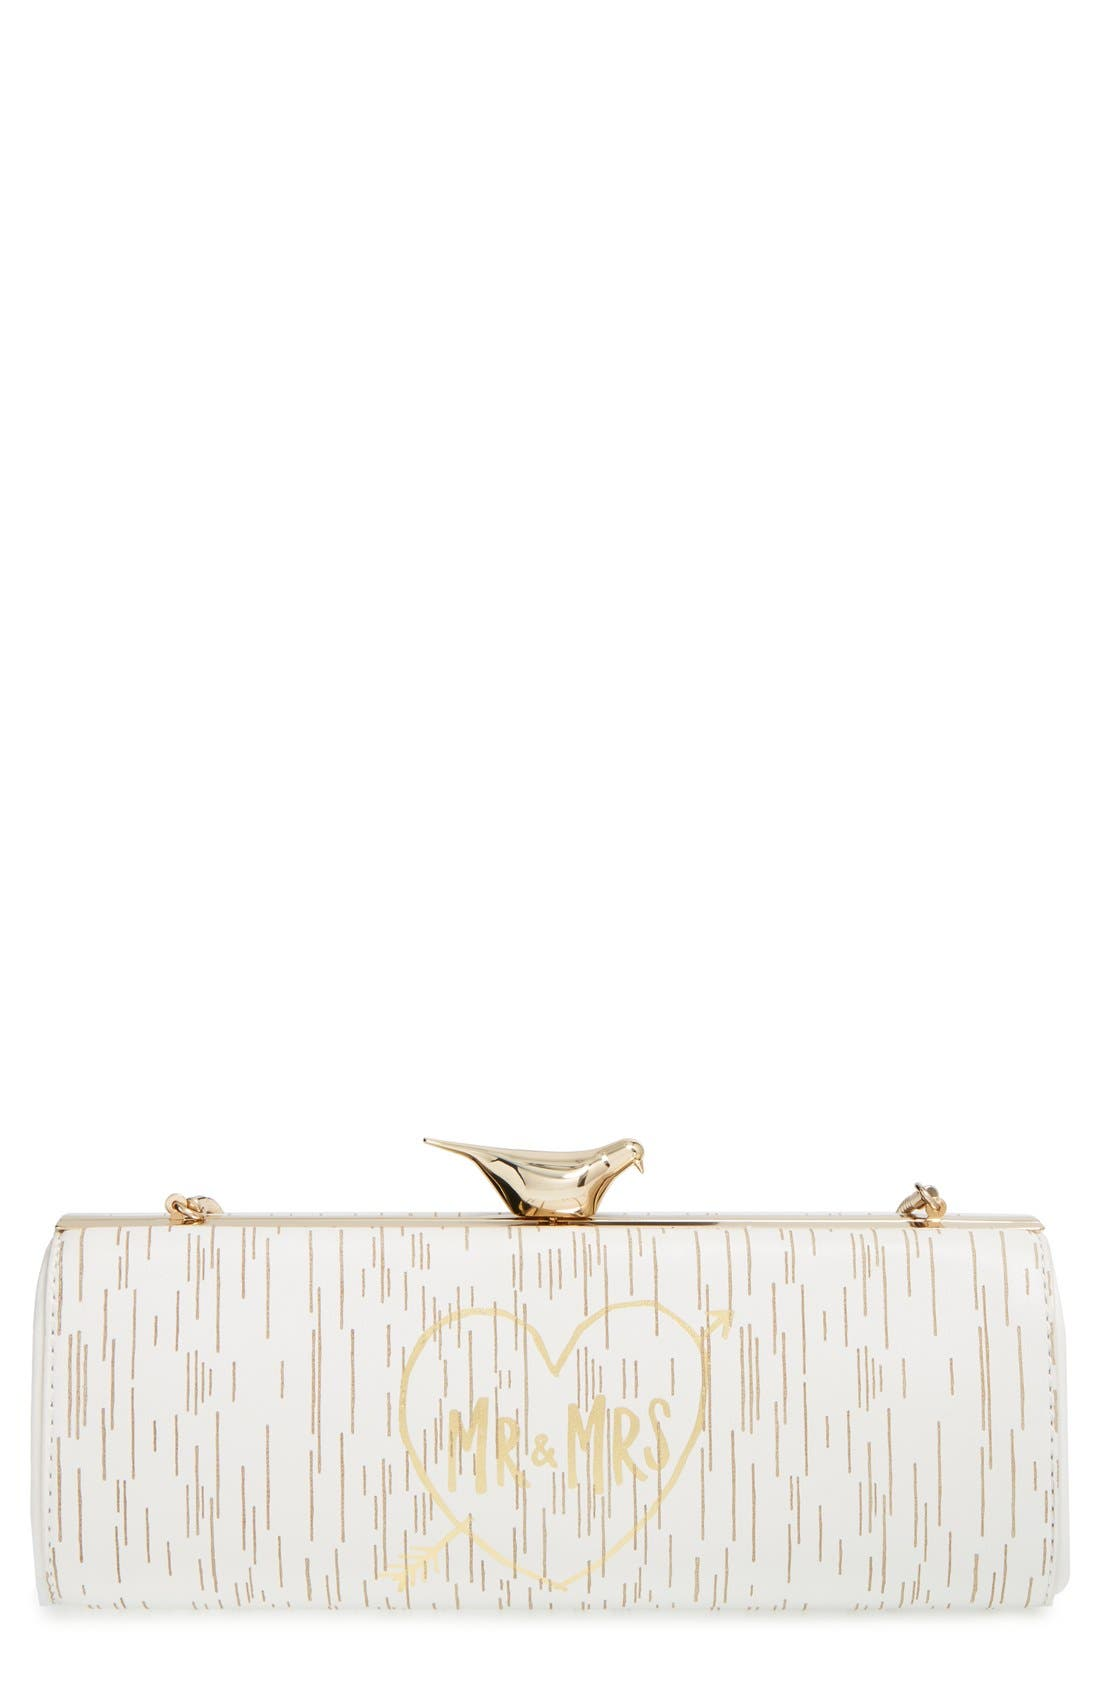 Main Image - kate spade new york 'wedding belles - mr. & mrs.' clutch